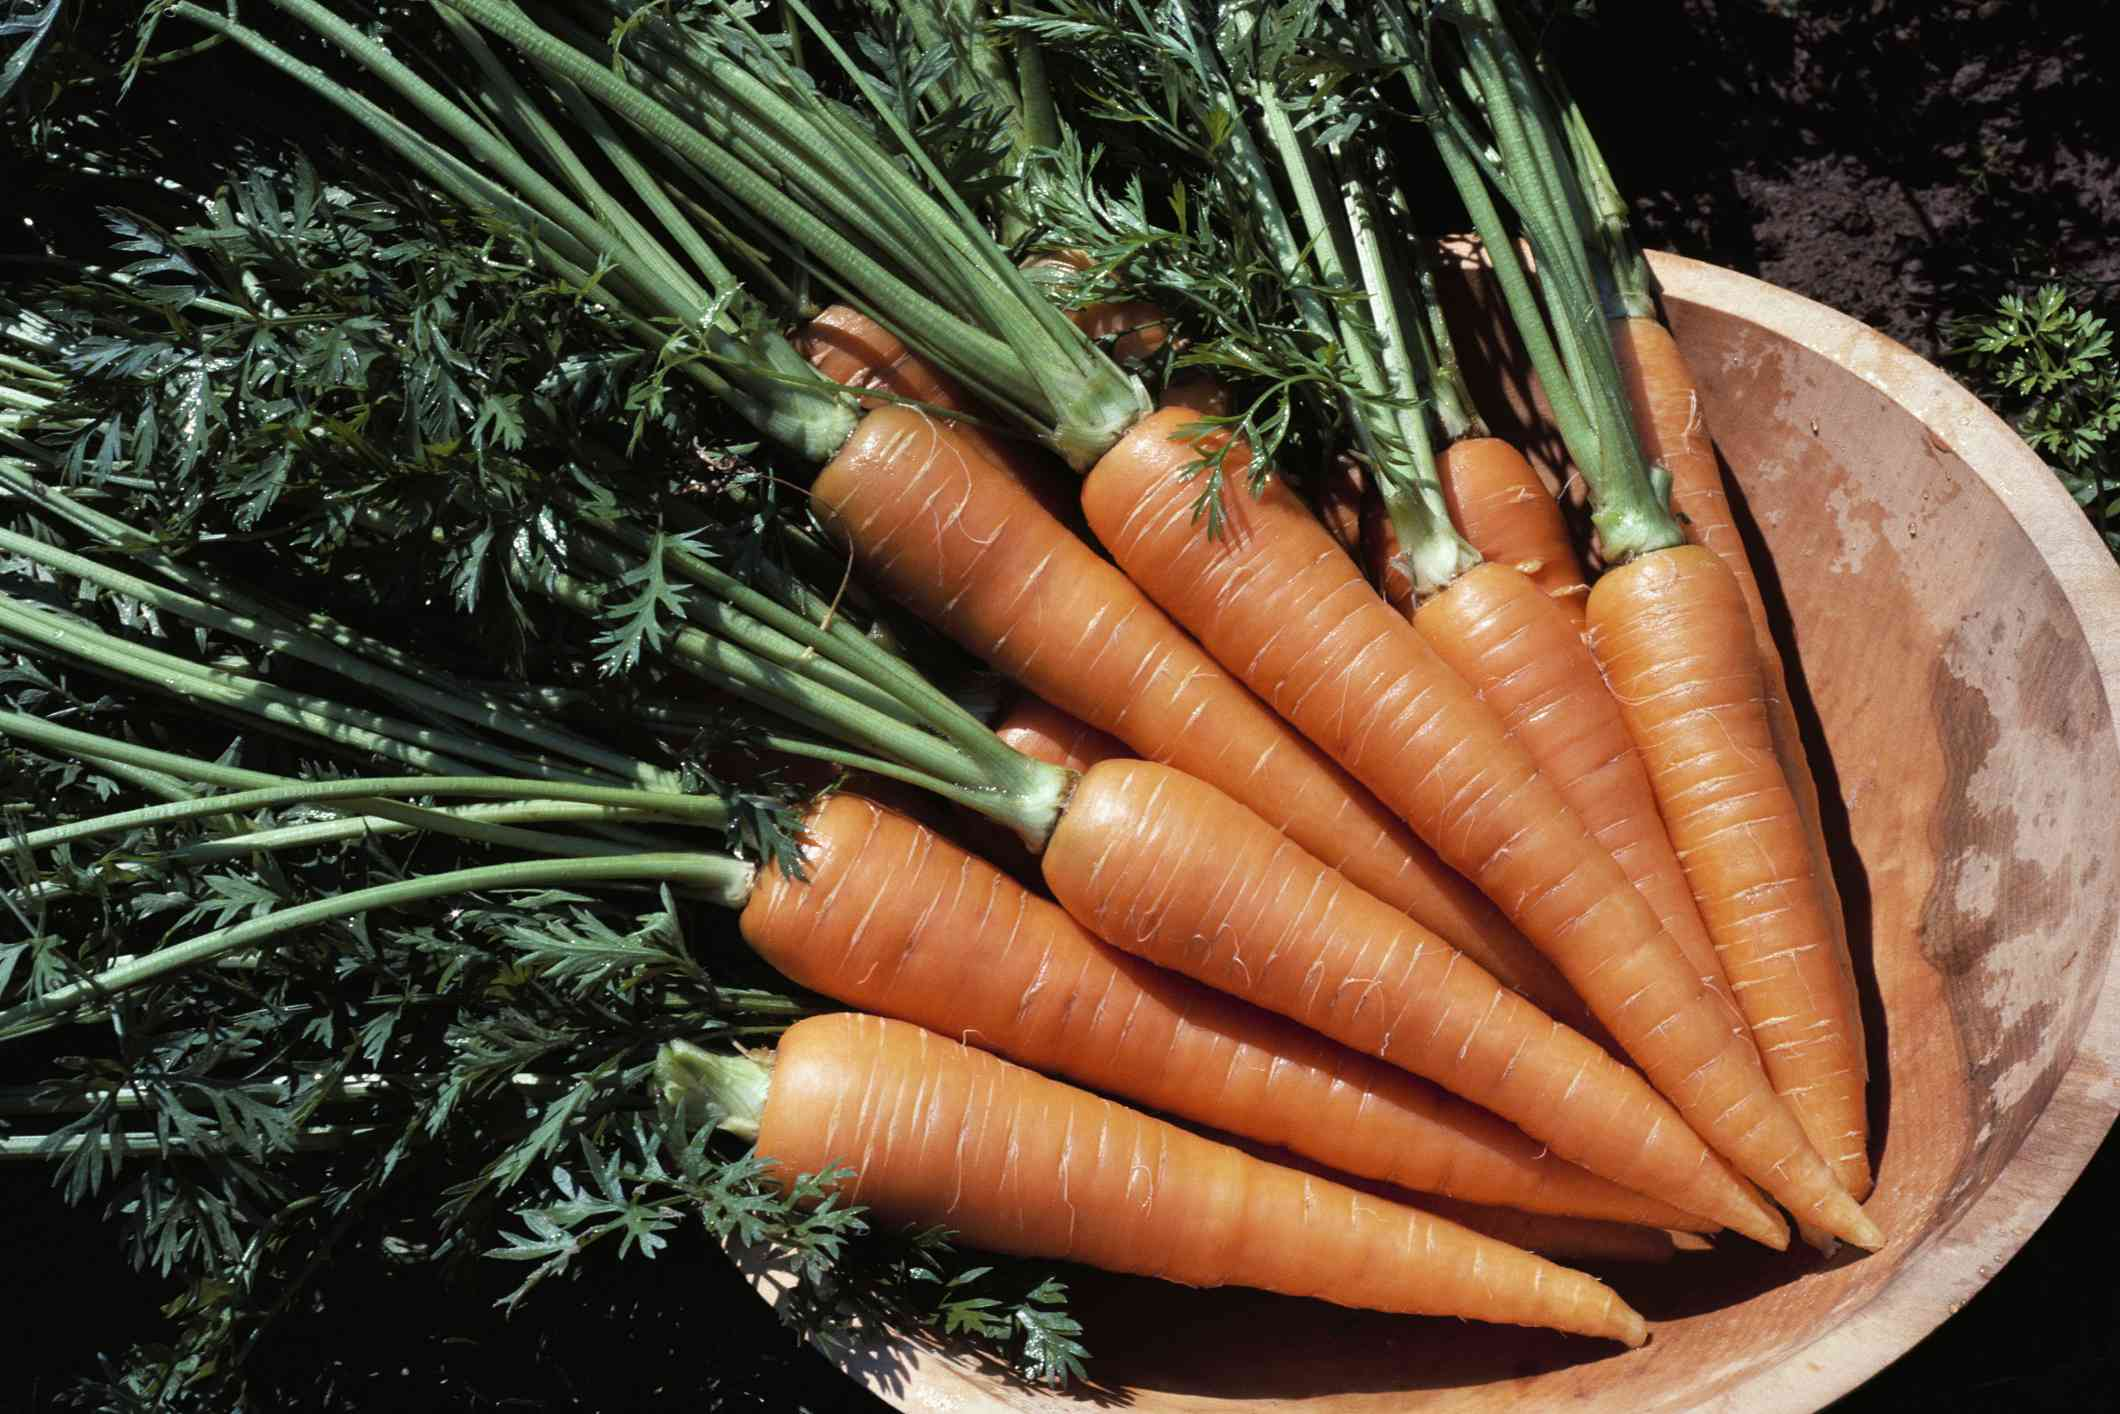 Bunch of carrots with tops in wooden bowl.